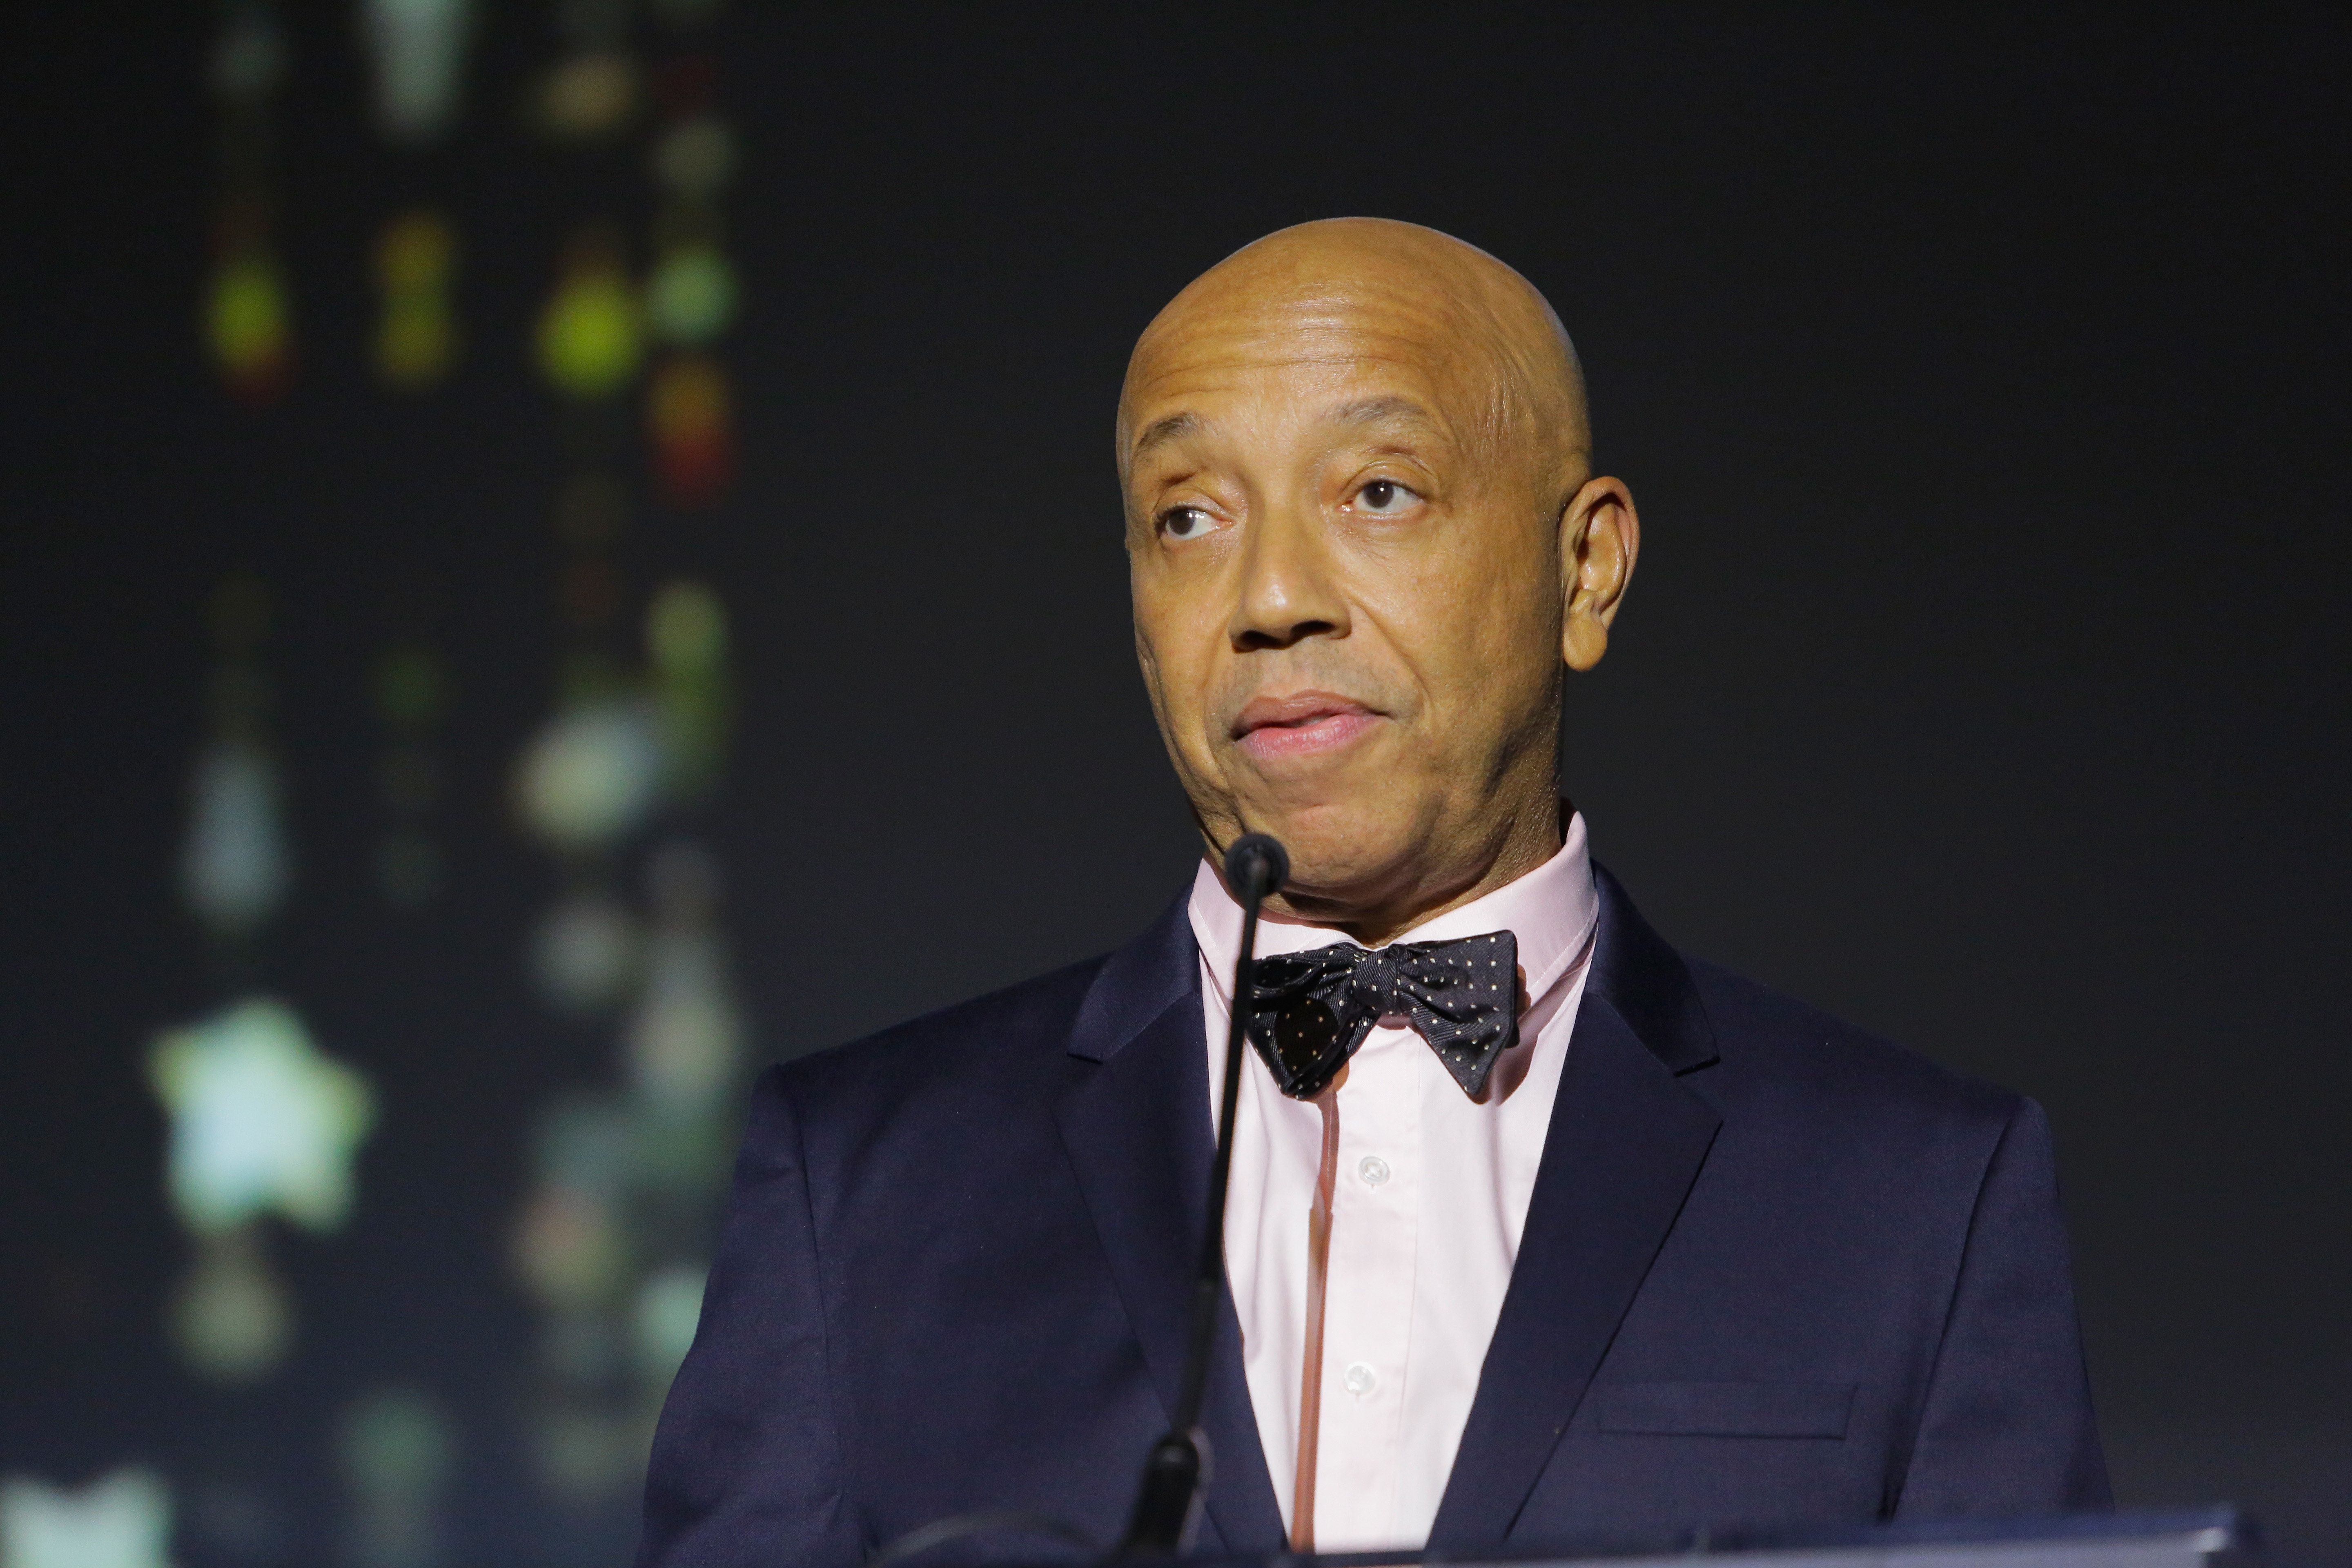 LOS ANGELES, CA - NOVEMBER 09:  Music producer Russell Simmons speaks onstage at the 2017 Make a Wish Gala on November 9, 2017 in Los Angeles, California.  (Photo by Tiffany Rose/Getty Images for Make A Wish)